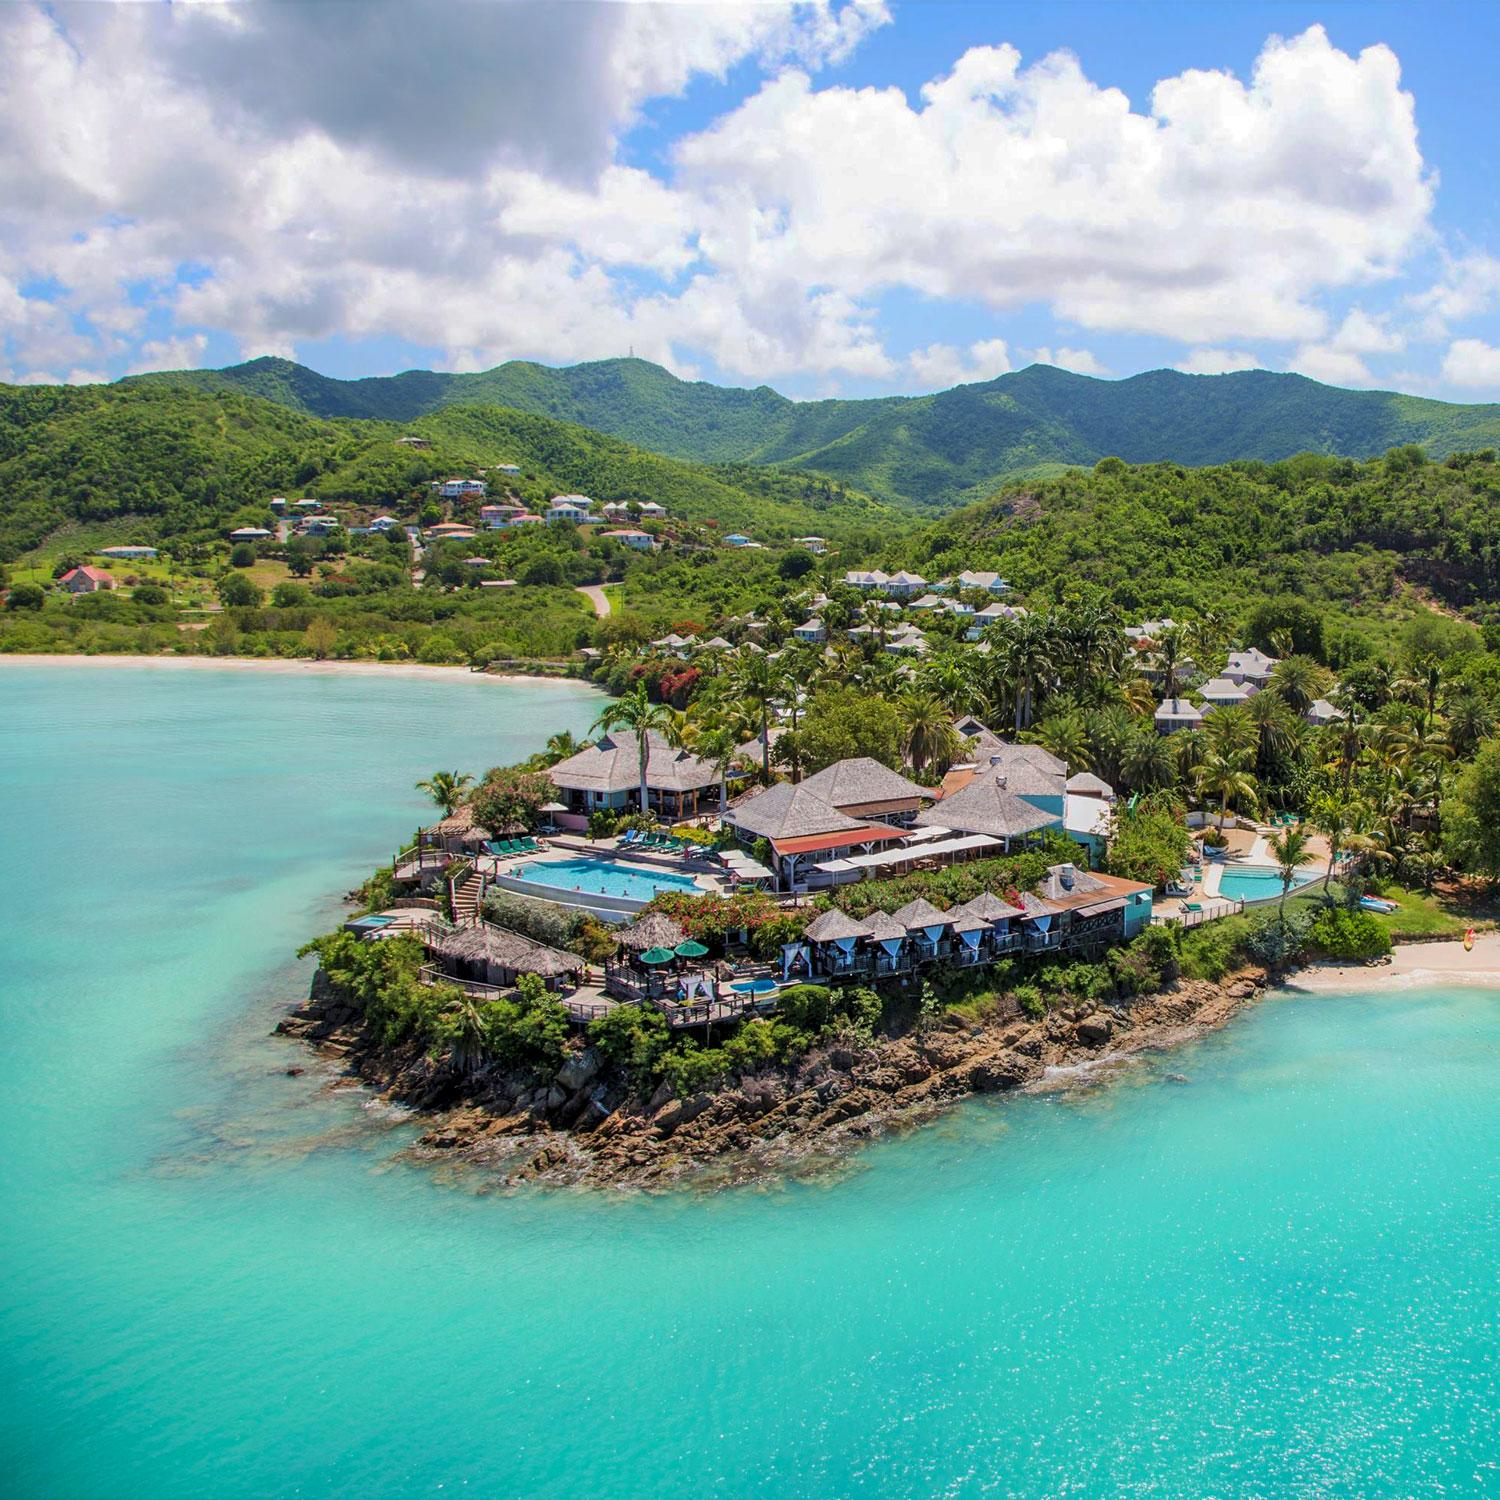 15 Best Luxury AllInclusive Resorts in the Caribbean